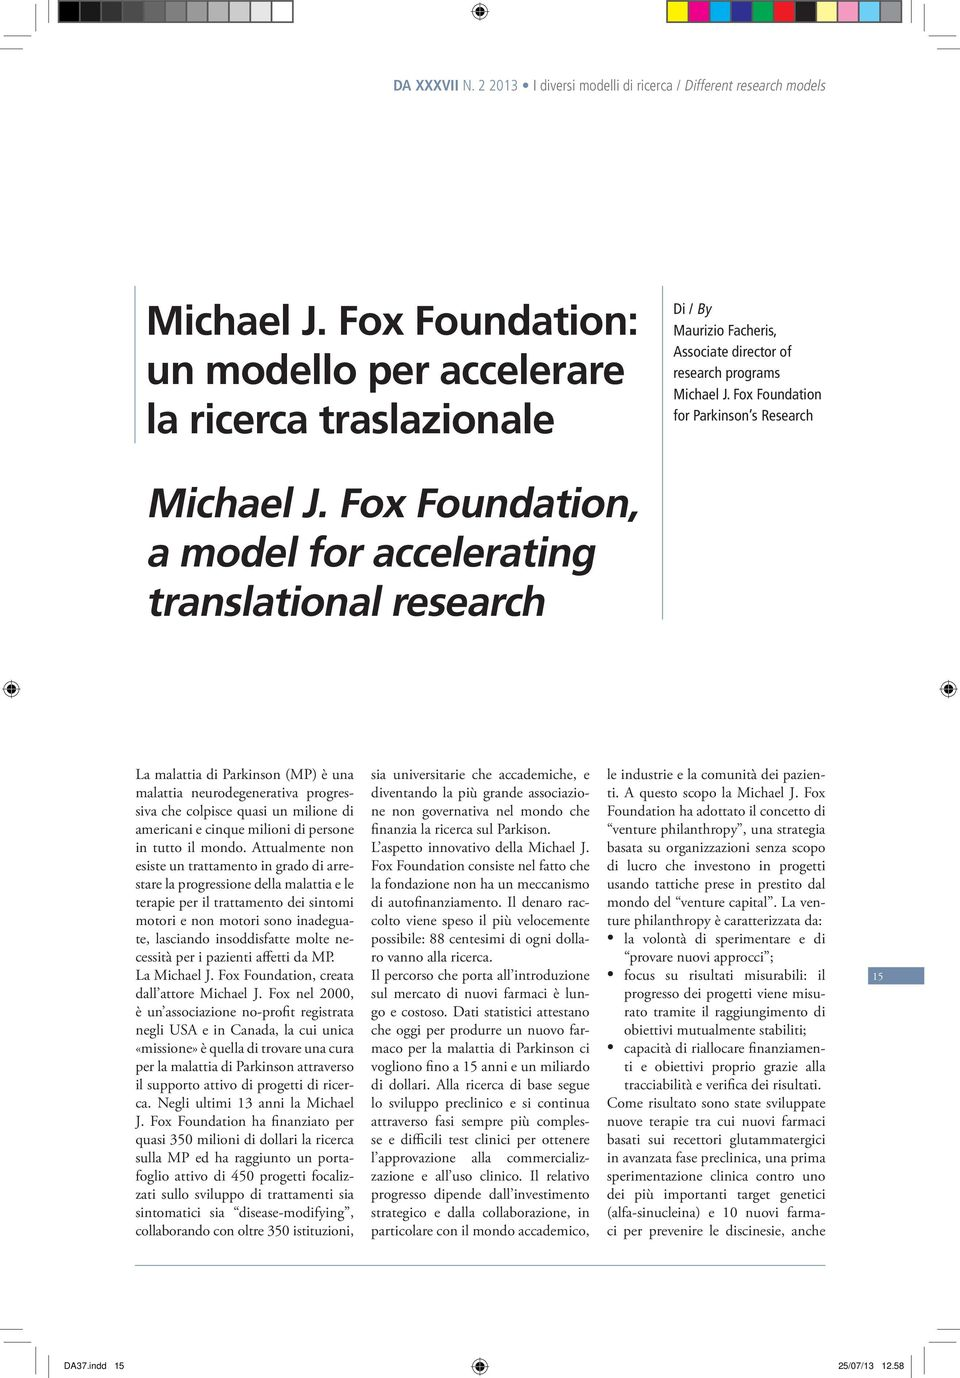 Fox Foundation, a model for accelerating translational research La malattia di Parkinson (MP) è una malattia neurodegenerativa progressiva che colpisce quasi un milione di americani e cinque milioni